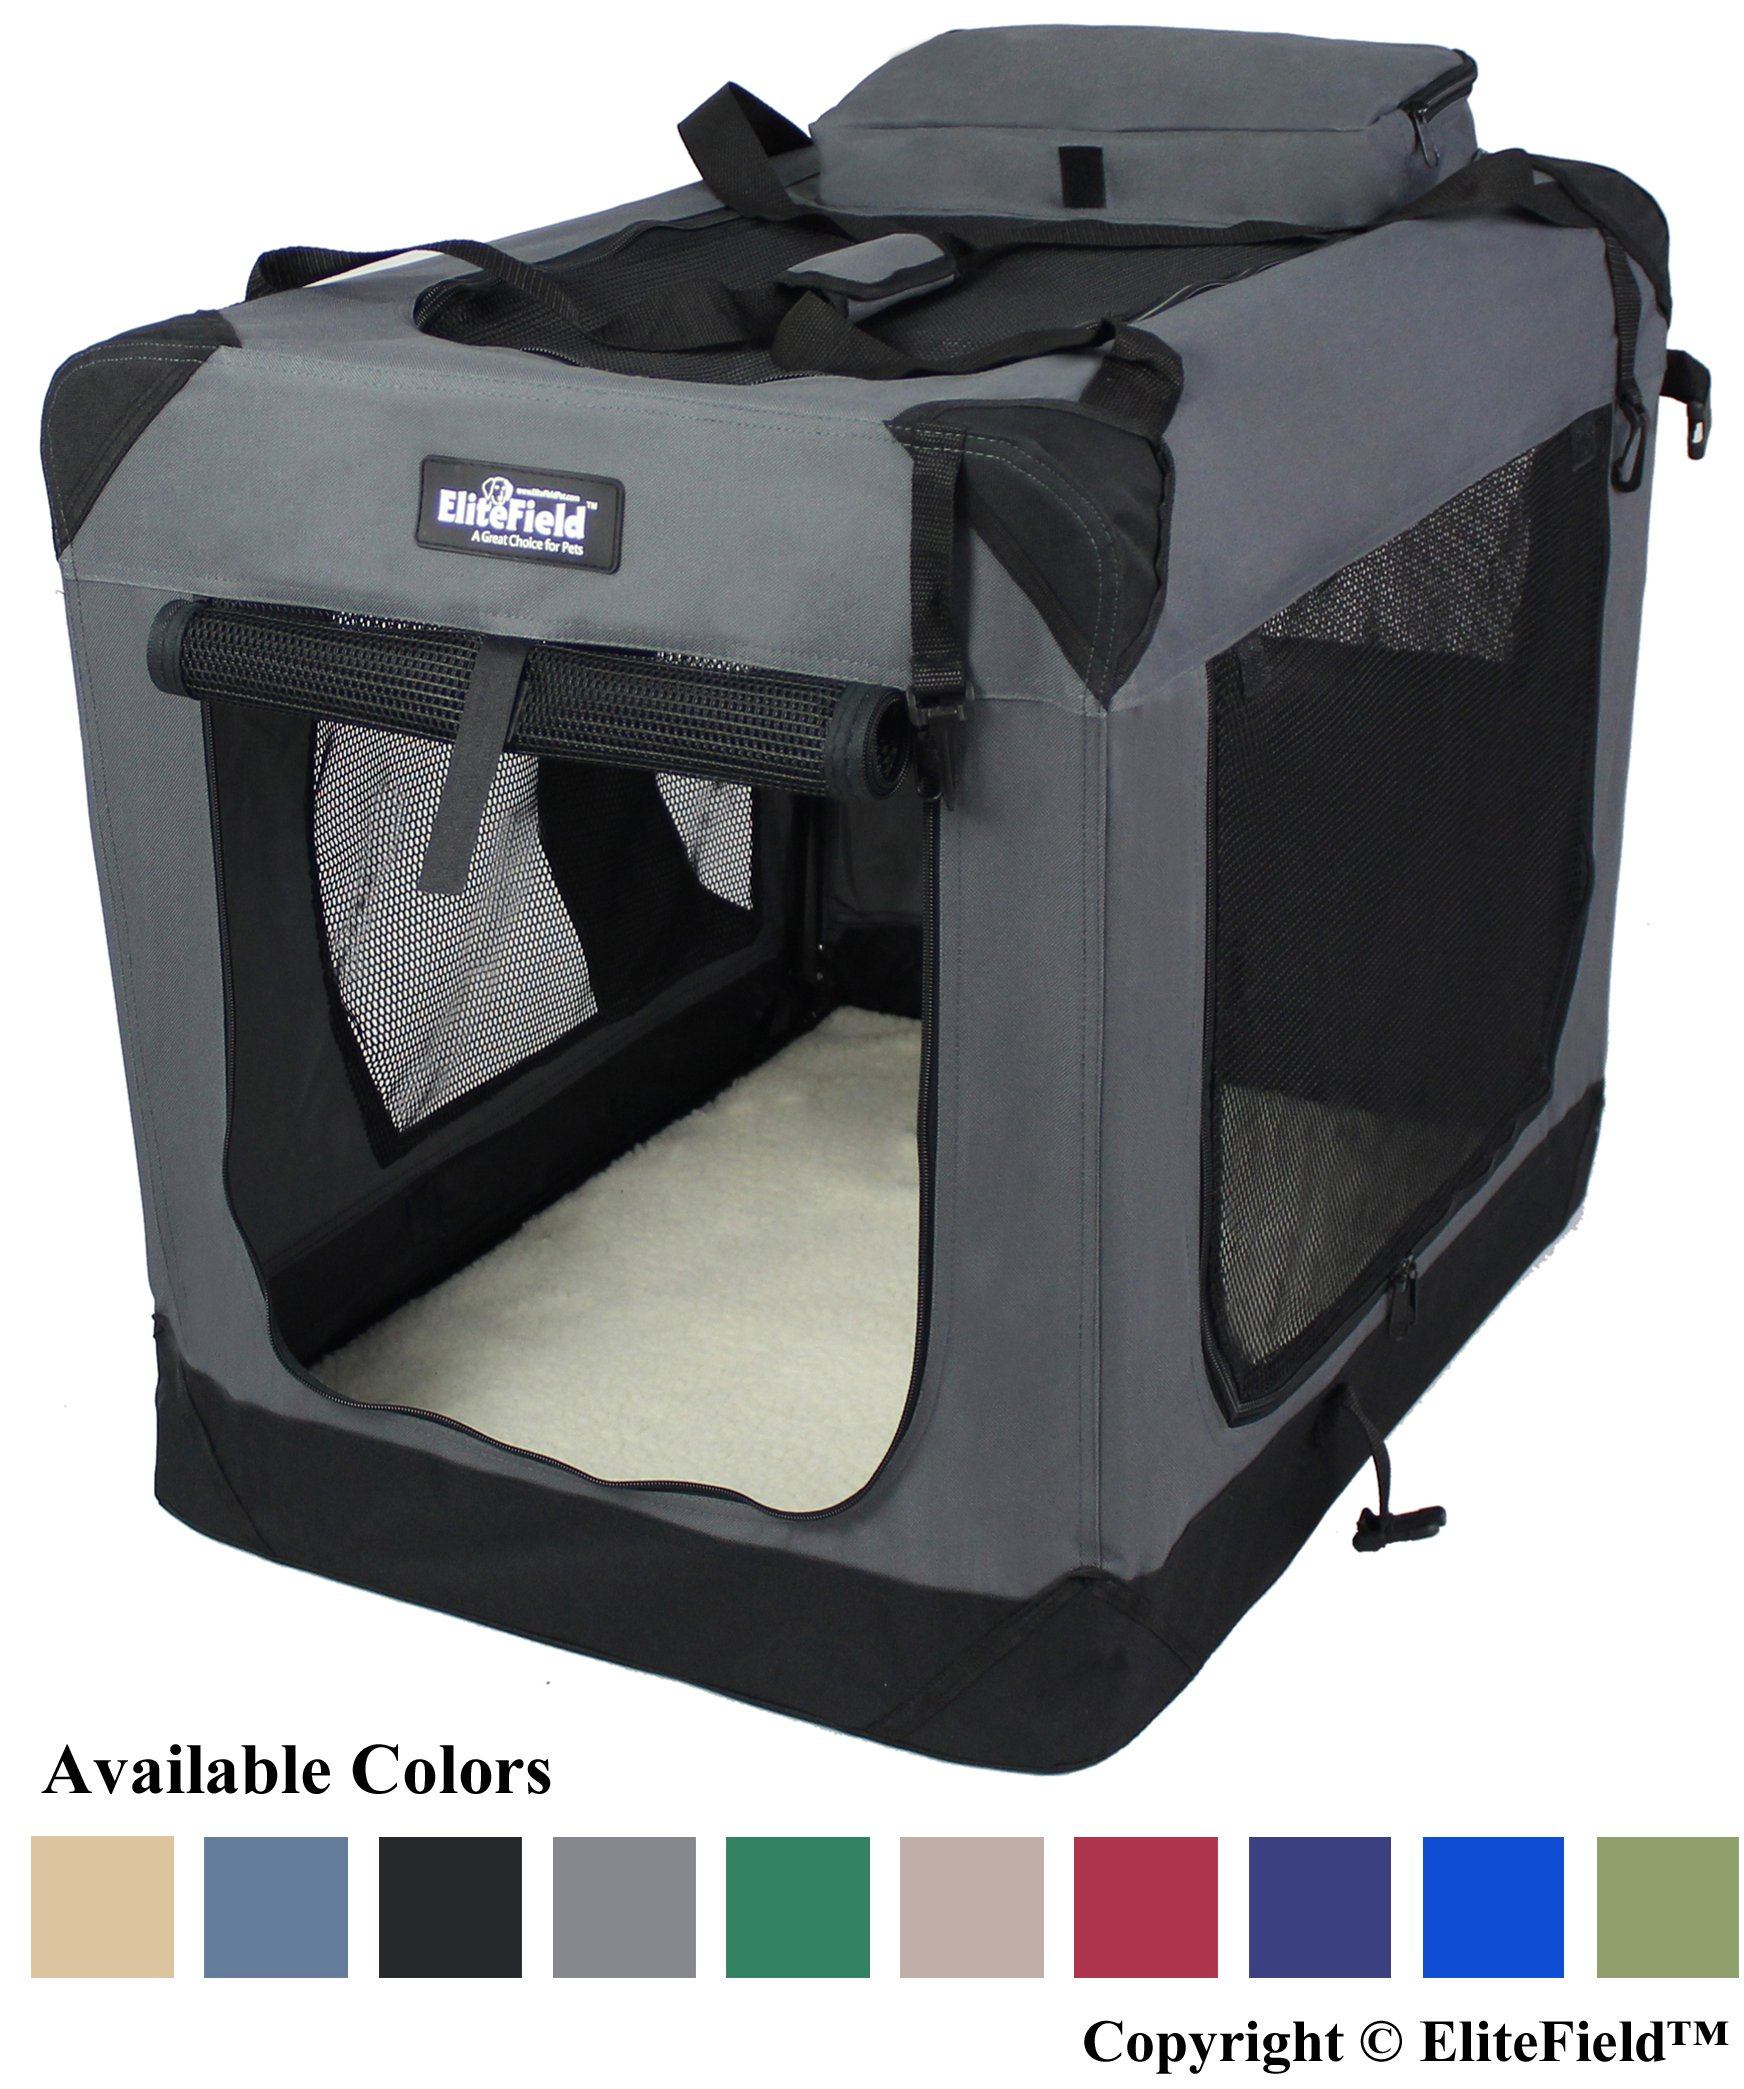 EliteField 3-Door Folding Soft Dog Crate, Indoor & Outdoor Pet Home, Multiple Sizes and Colors Available (36'' L x 24'' W x 28'' H, Gray) by EliteField